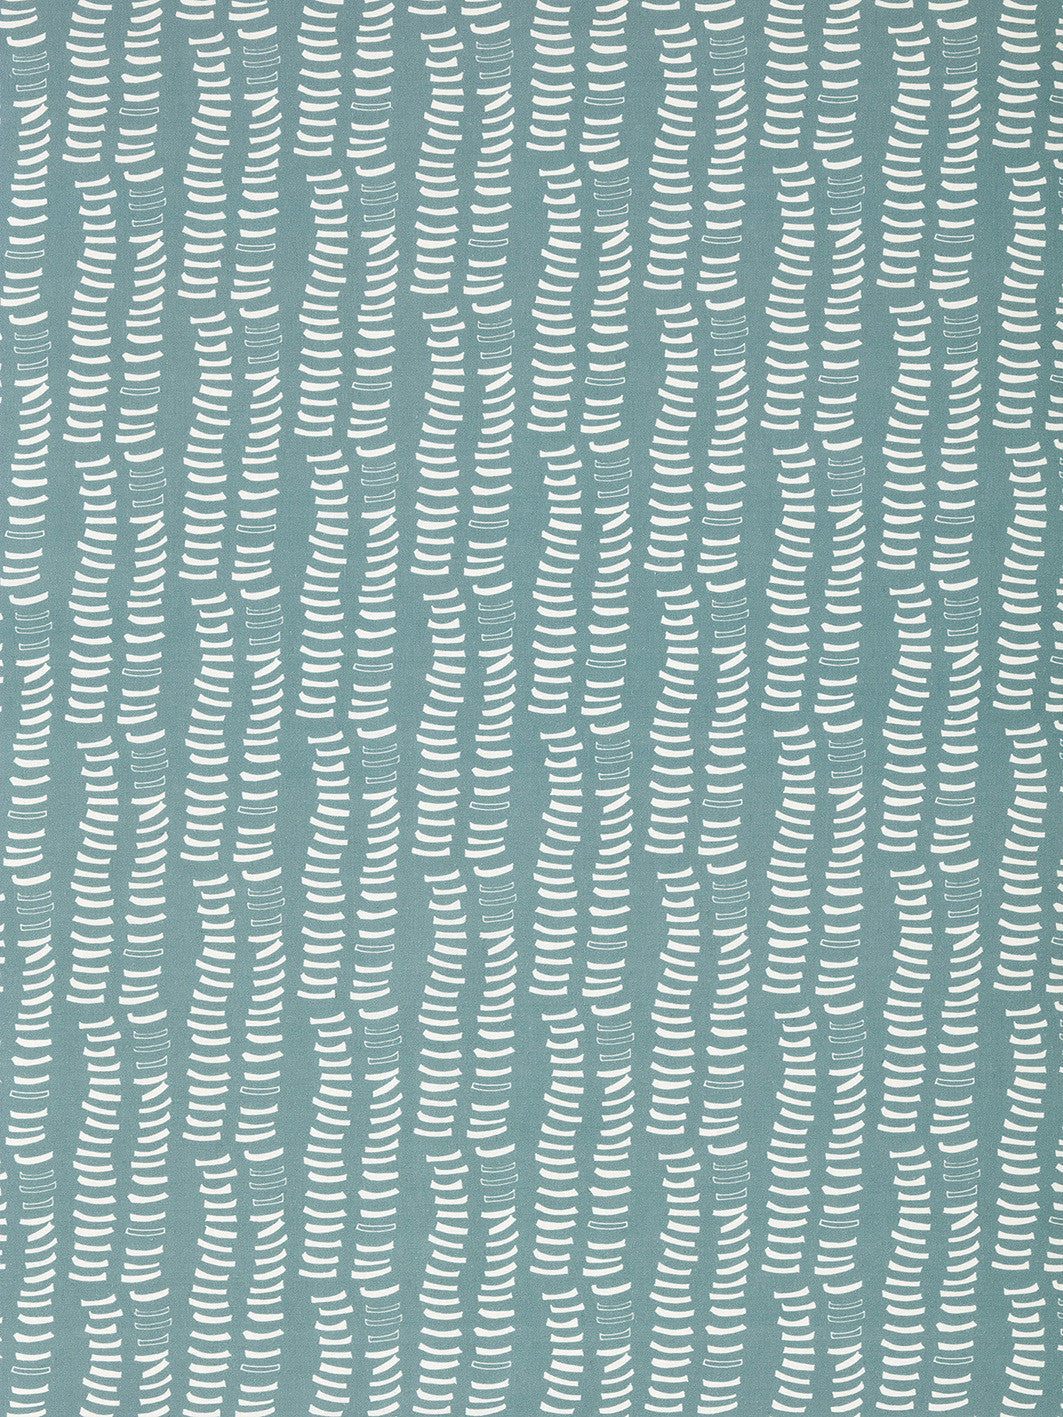 Graphic Adam's Rib Pattern Screen Printed Linen Cotton Canvas Fabric in Light Chambray Blue and White